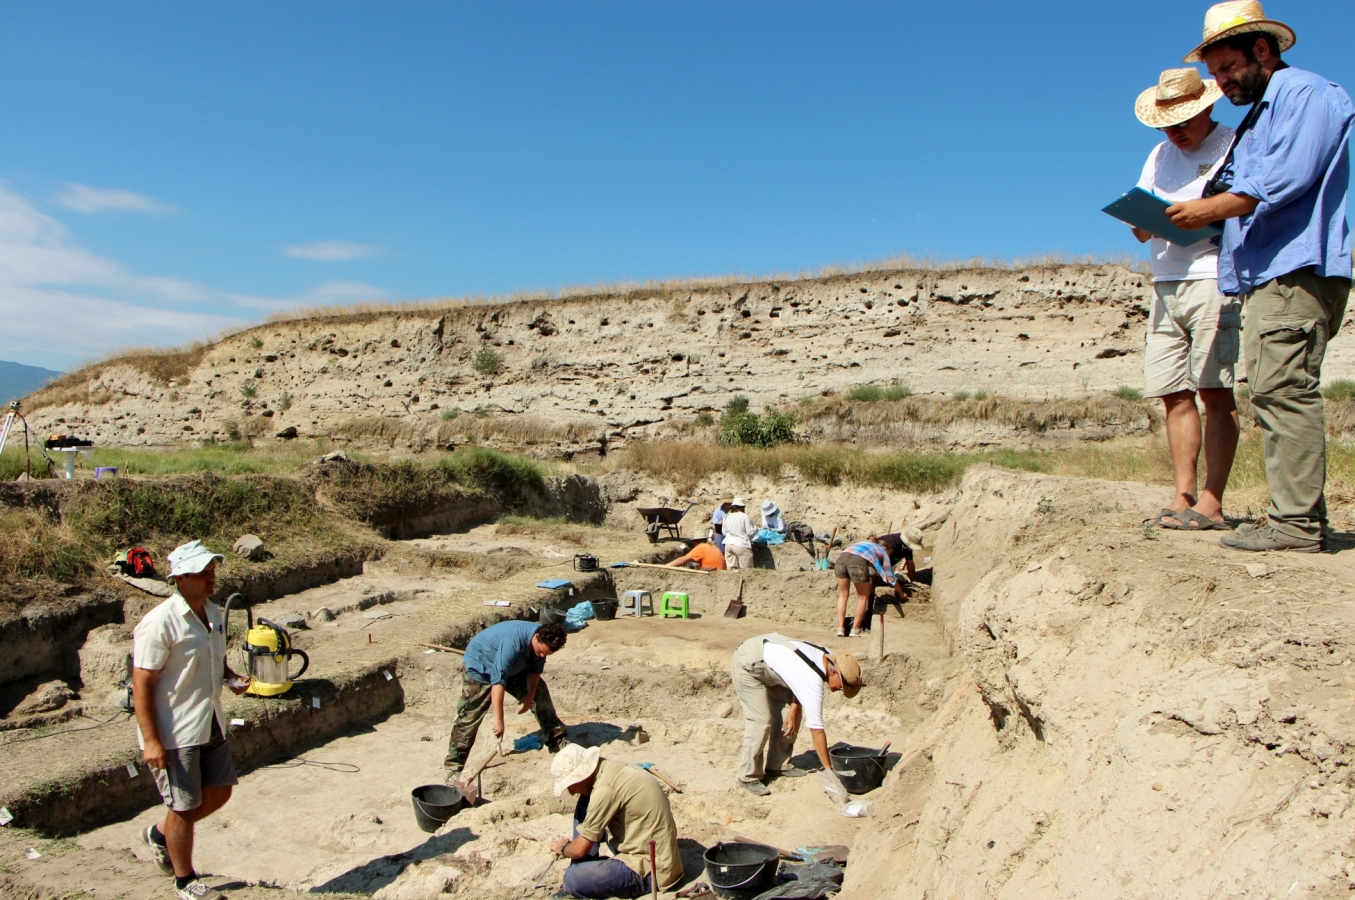 Prehistoric Surgery? The Oldest Evidence of Amputation in Southeastern Europe Uncovered at Tell Yunatsite, Bulgaria